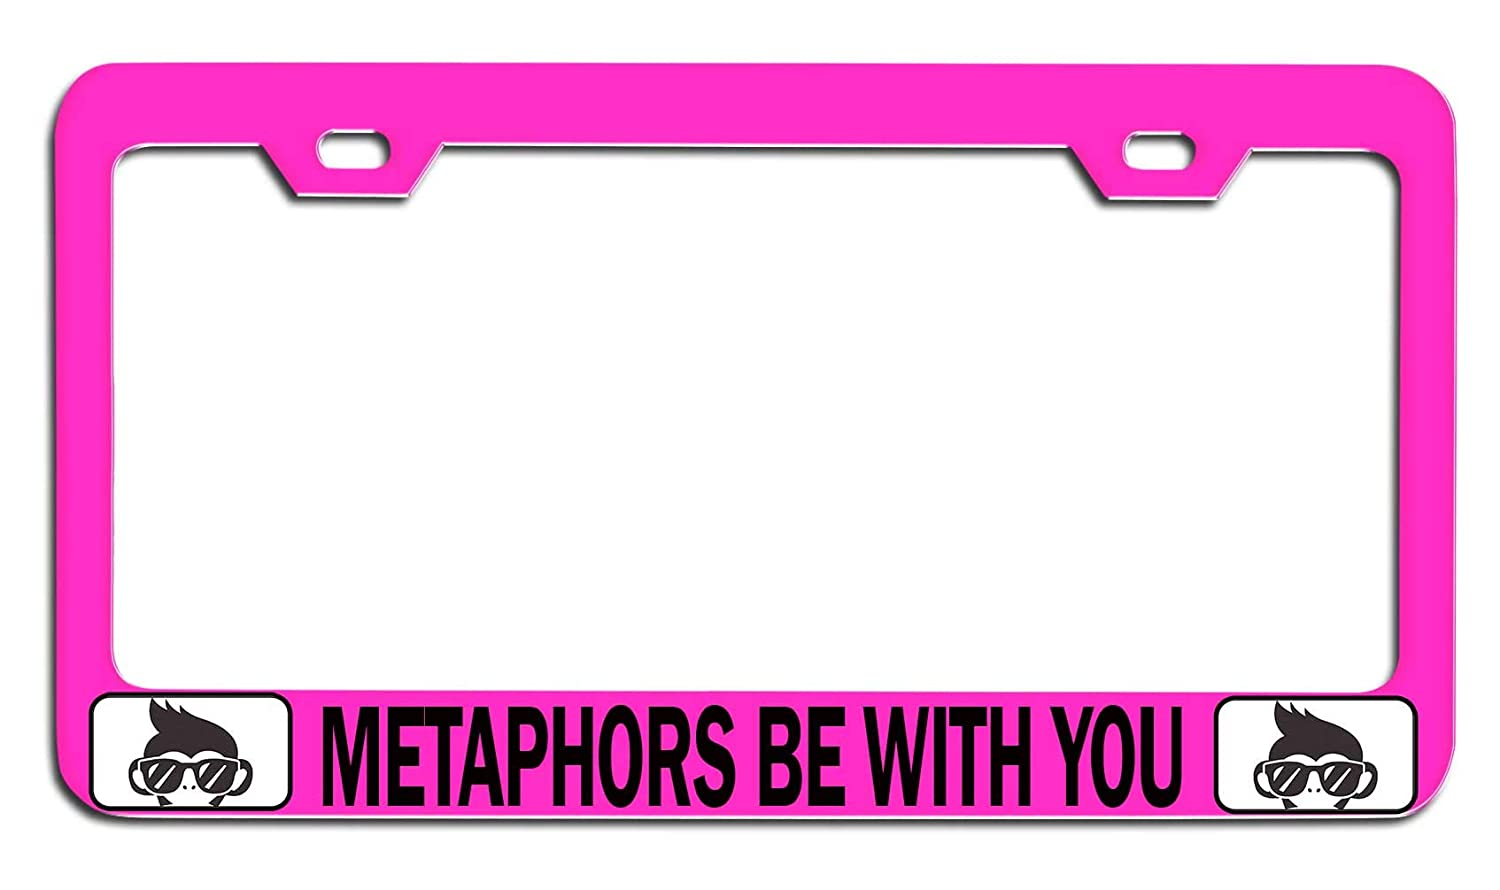 Amazon com: Makoroni - METAPHORS BE WITH YOU Geek Pink Steel